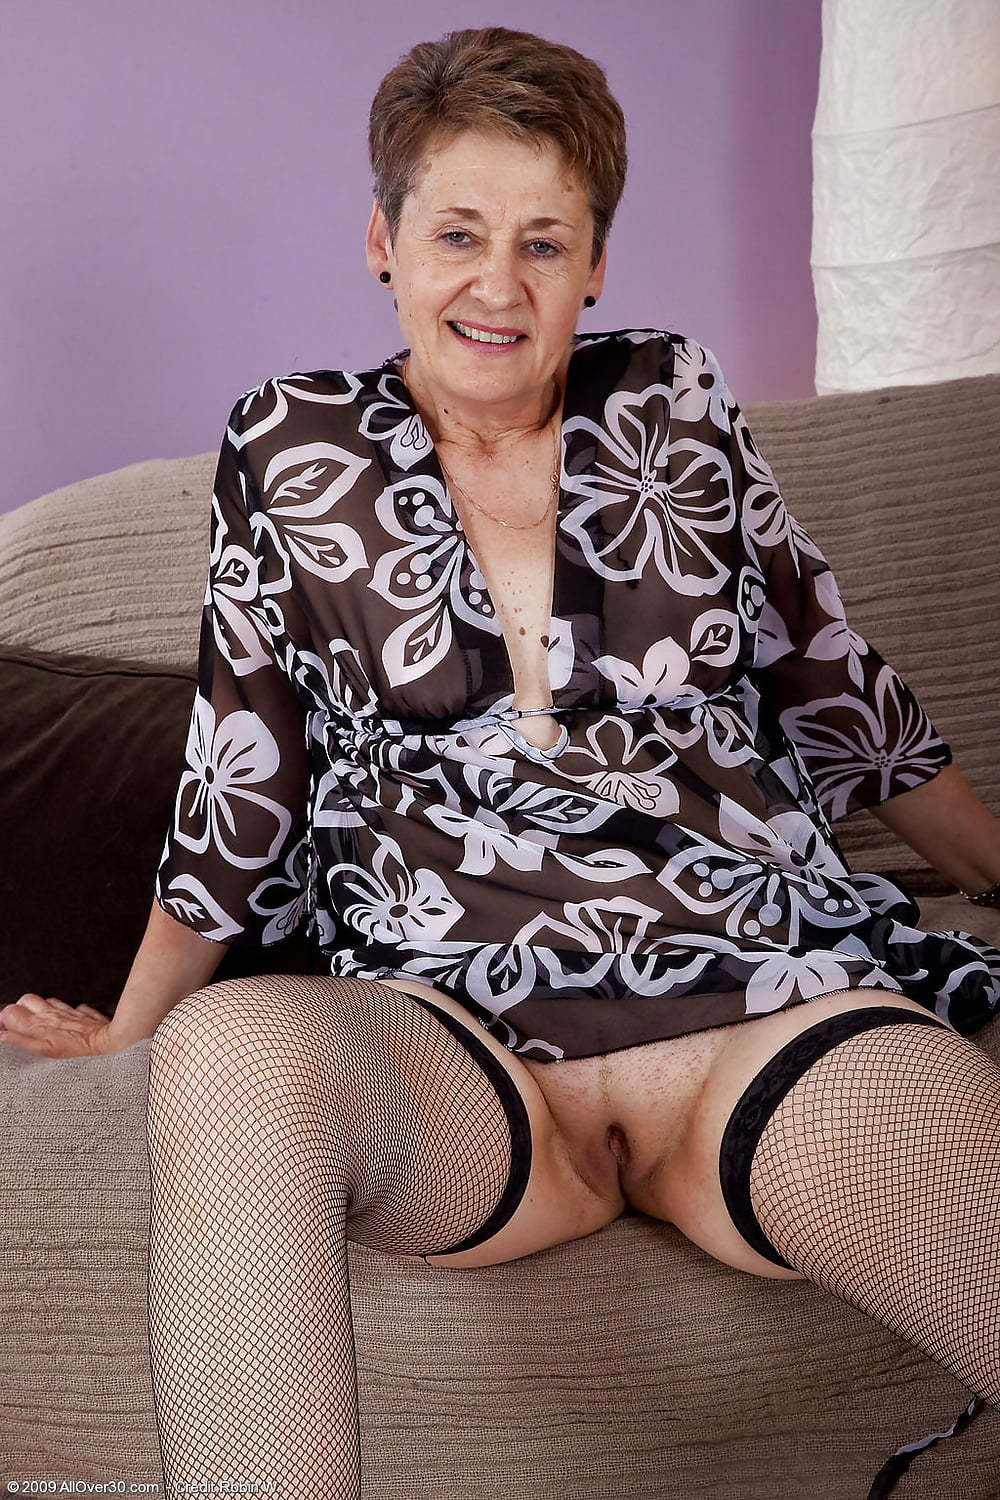 short haired granny in stockings displays pussy.jp - motherless